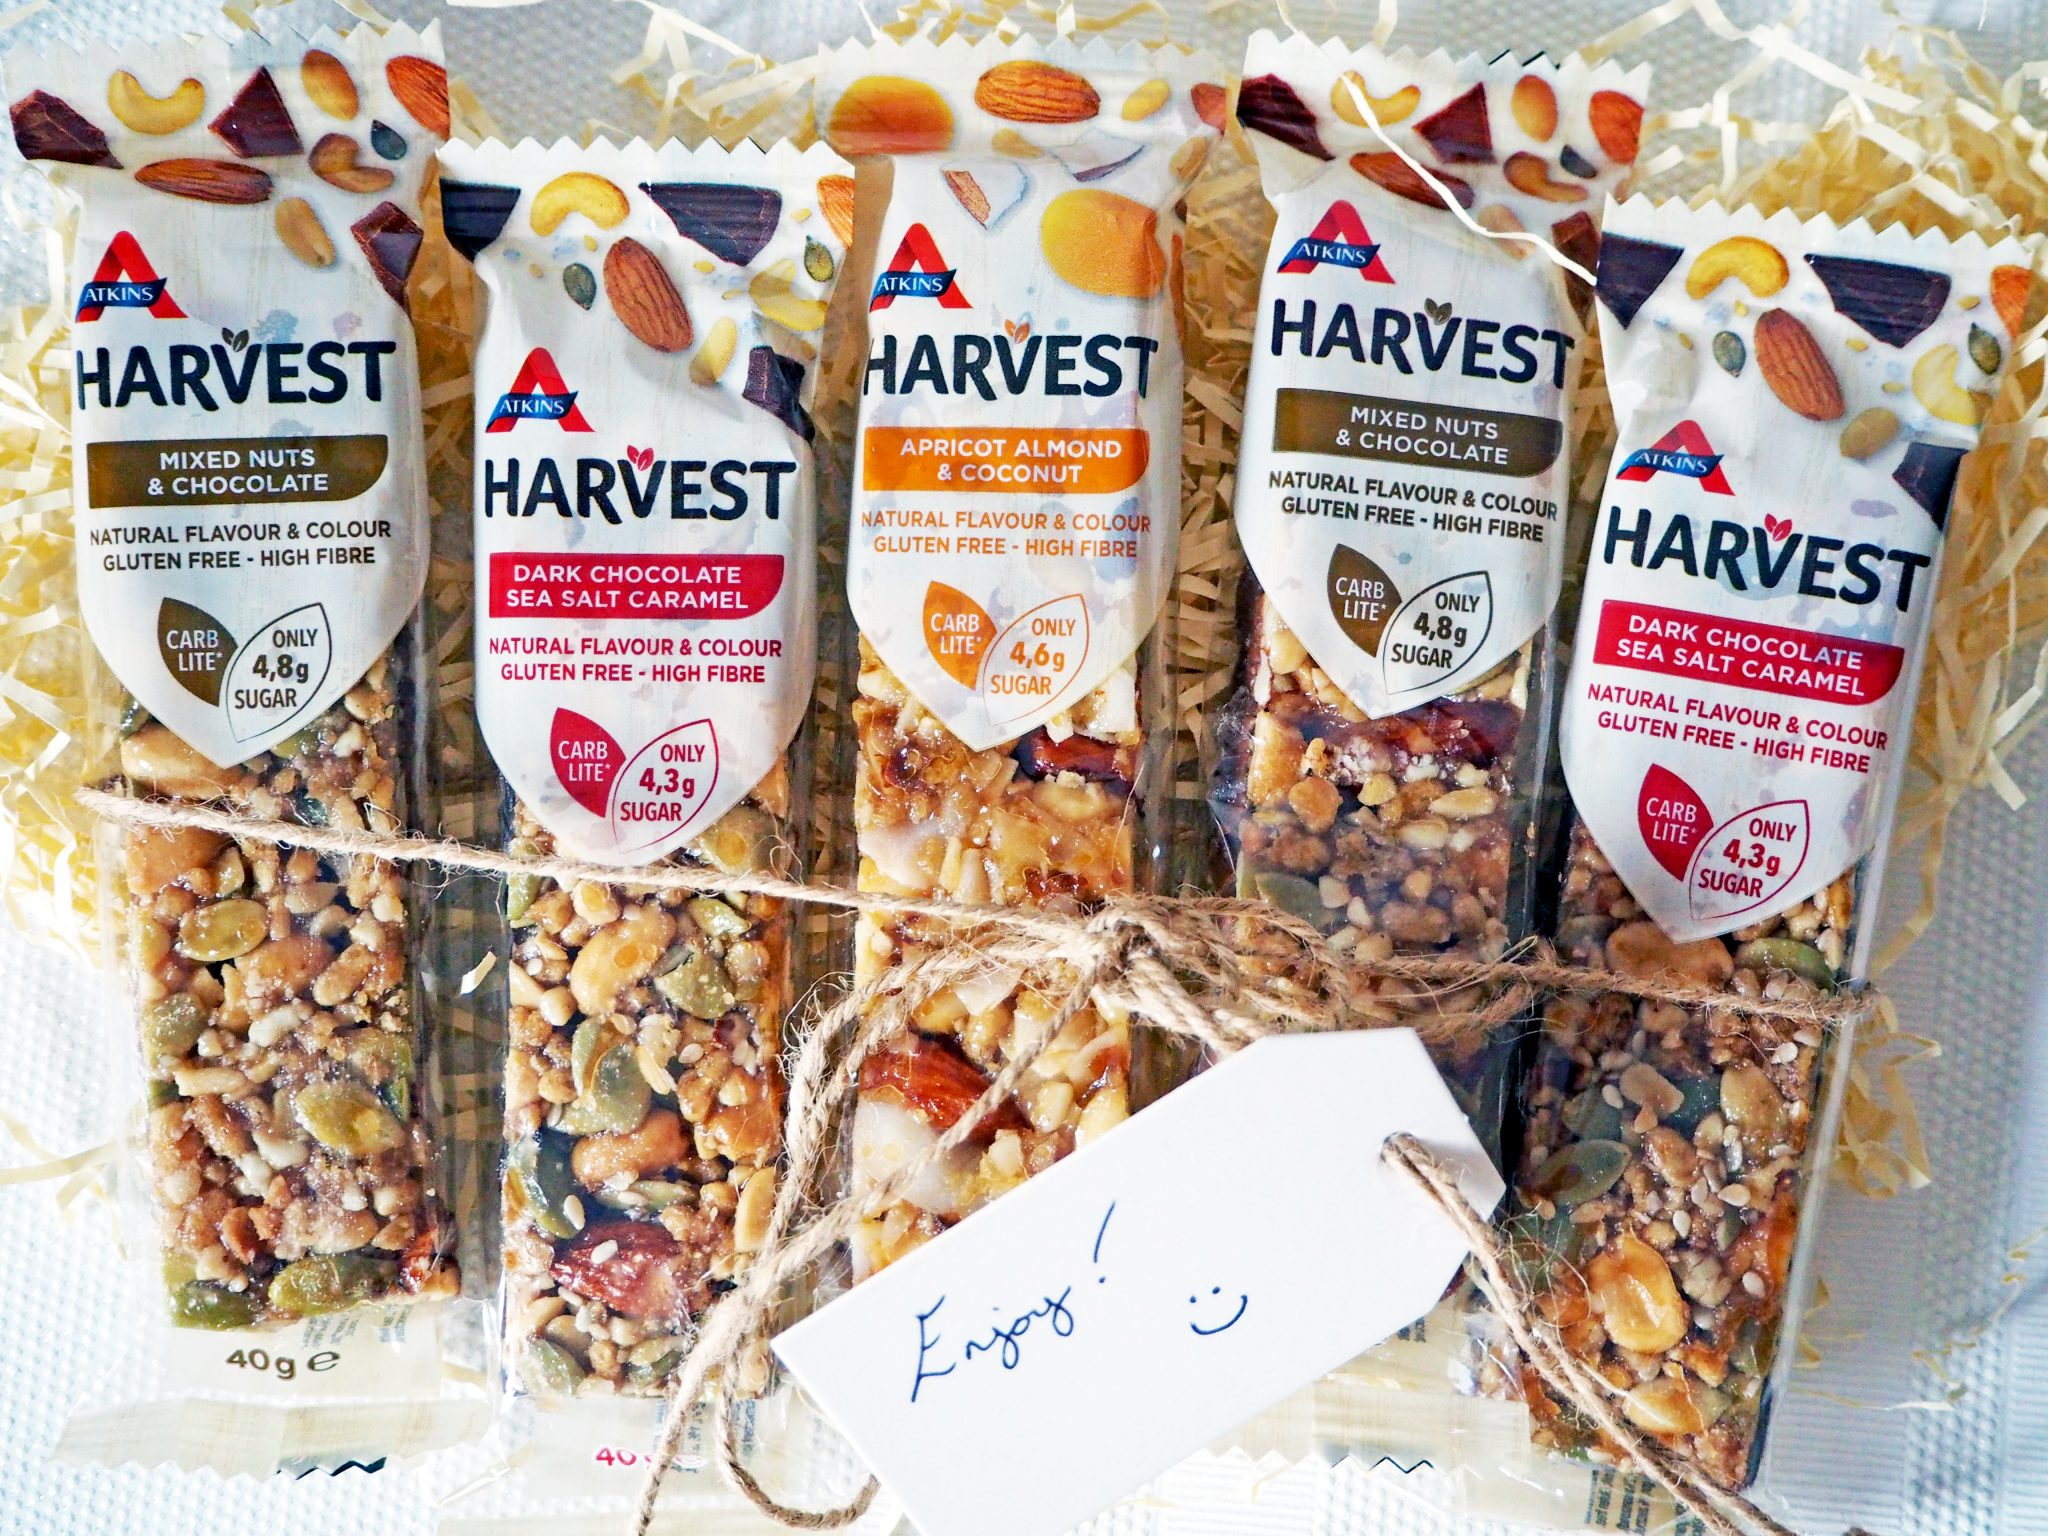 Laura Kate Lucas - Manchester Food, Fitness and Fashion Blogger   Atkins Harvest Natural Bar